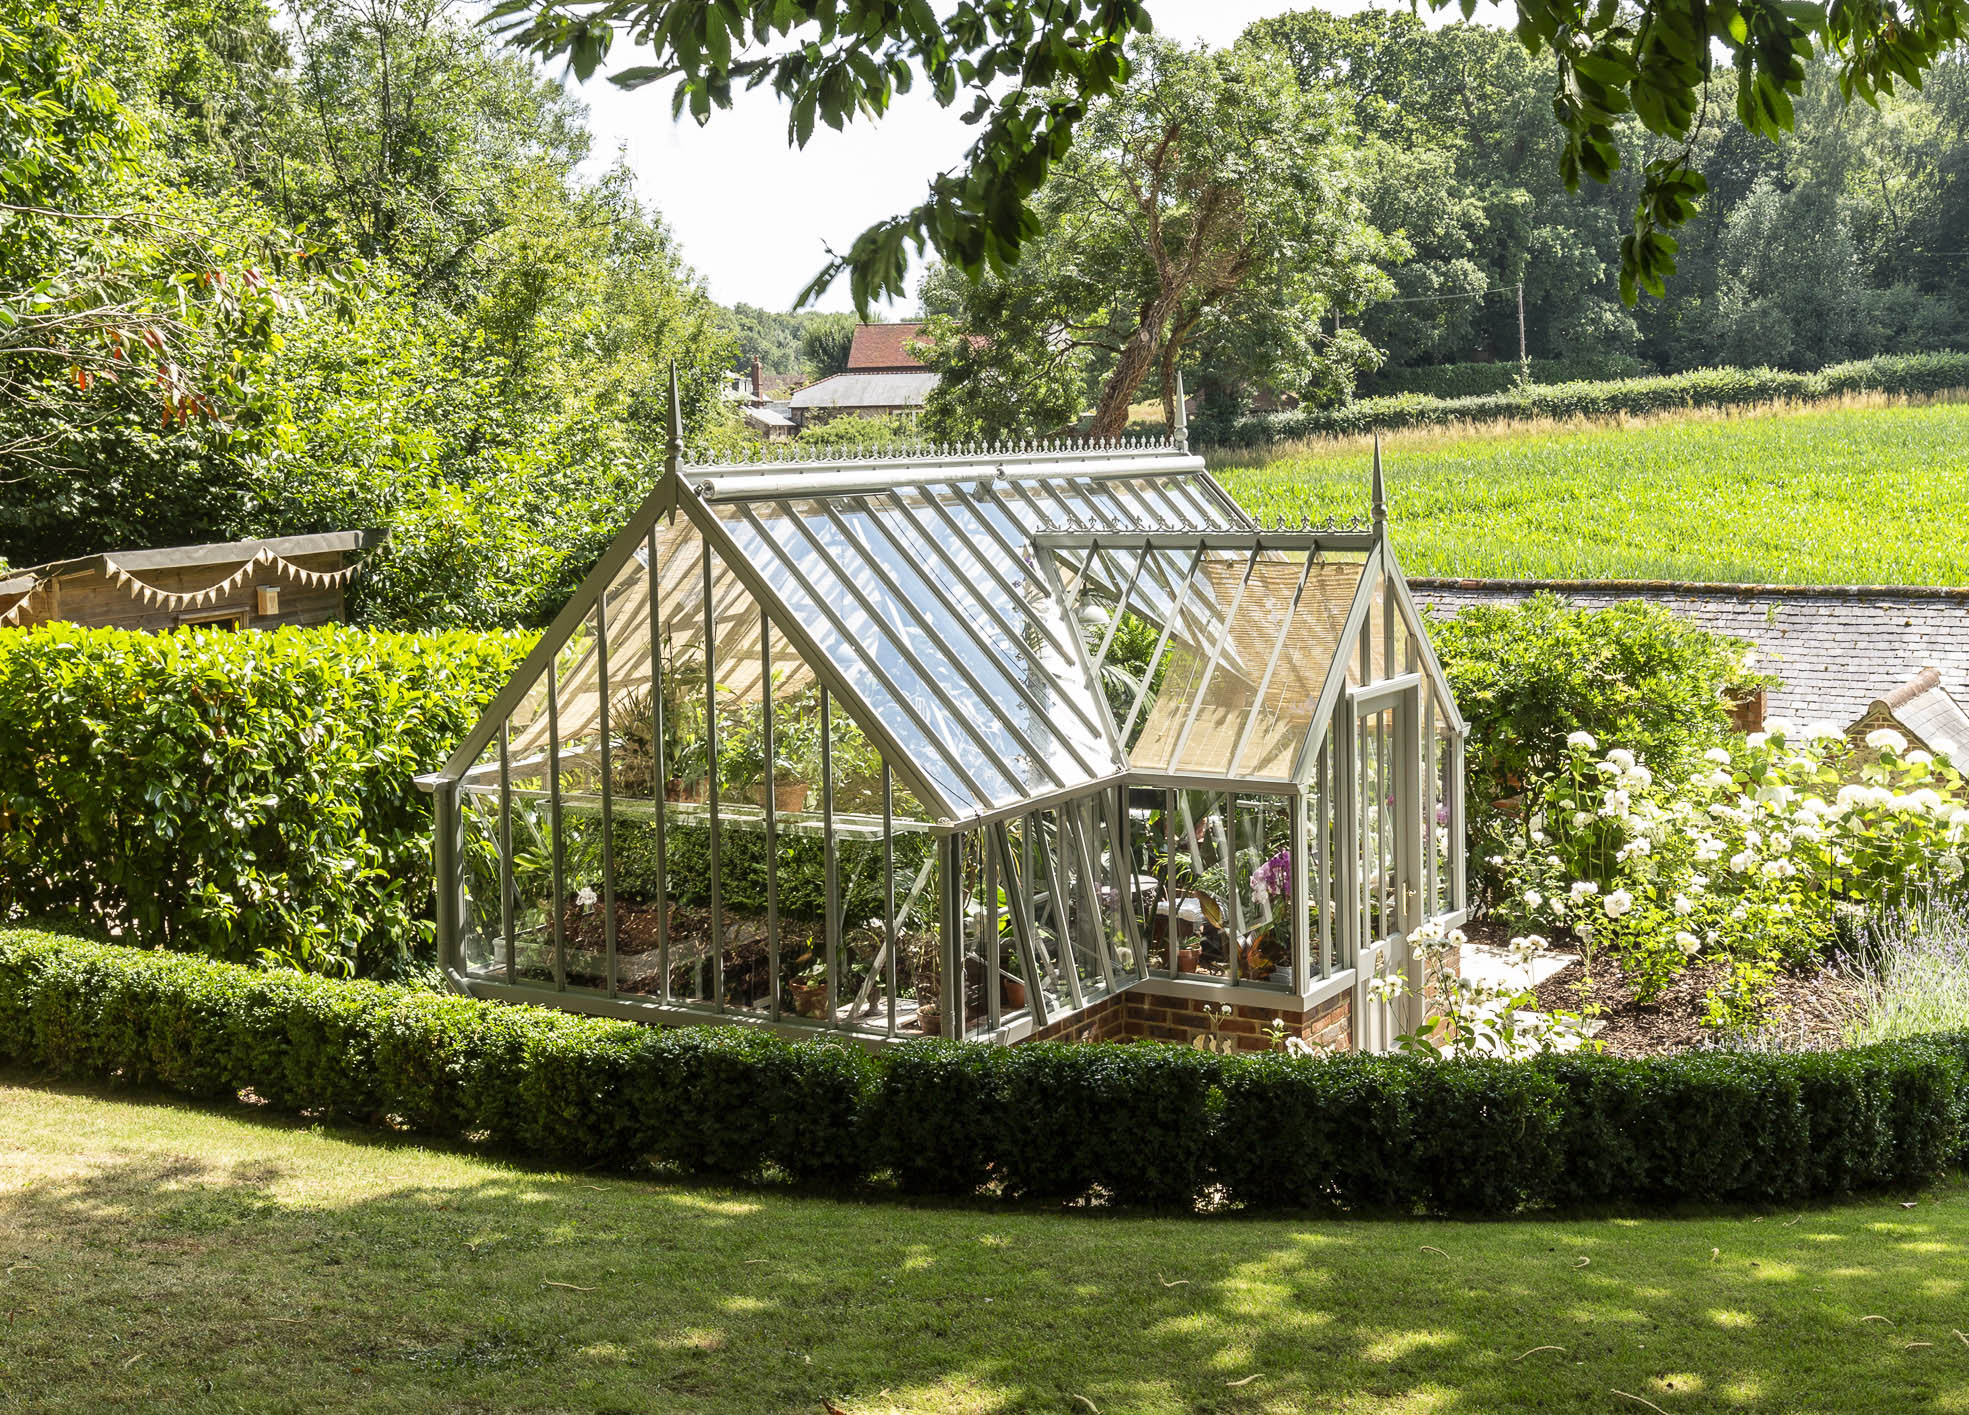 A Room For All Seasons: How an Alitex greenhouse creates a wonderful space to enjoy all year round